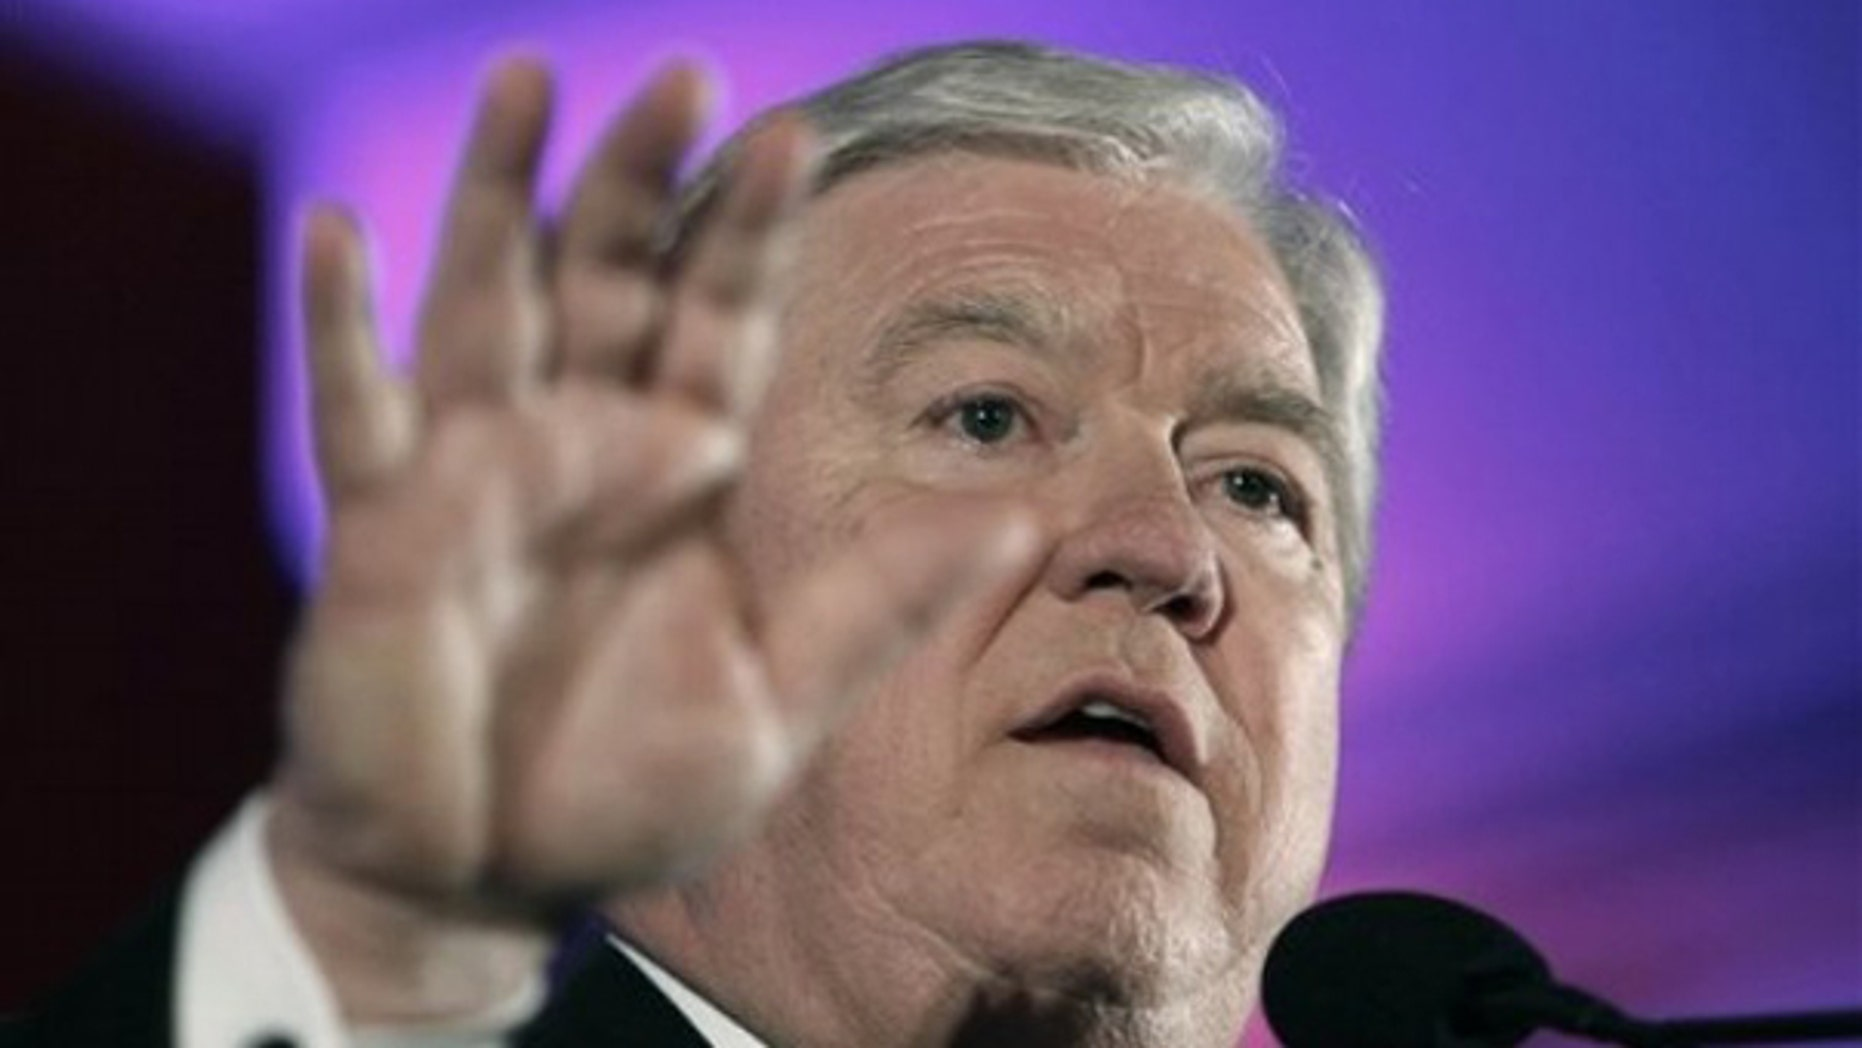 Mississippi Gov. Haley Barbour speaks at the Southern Republican Leadership Conference in New Orleans April 10. (AP Photo)